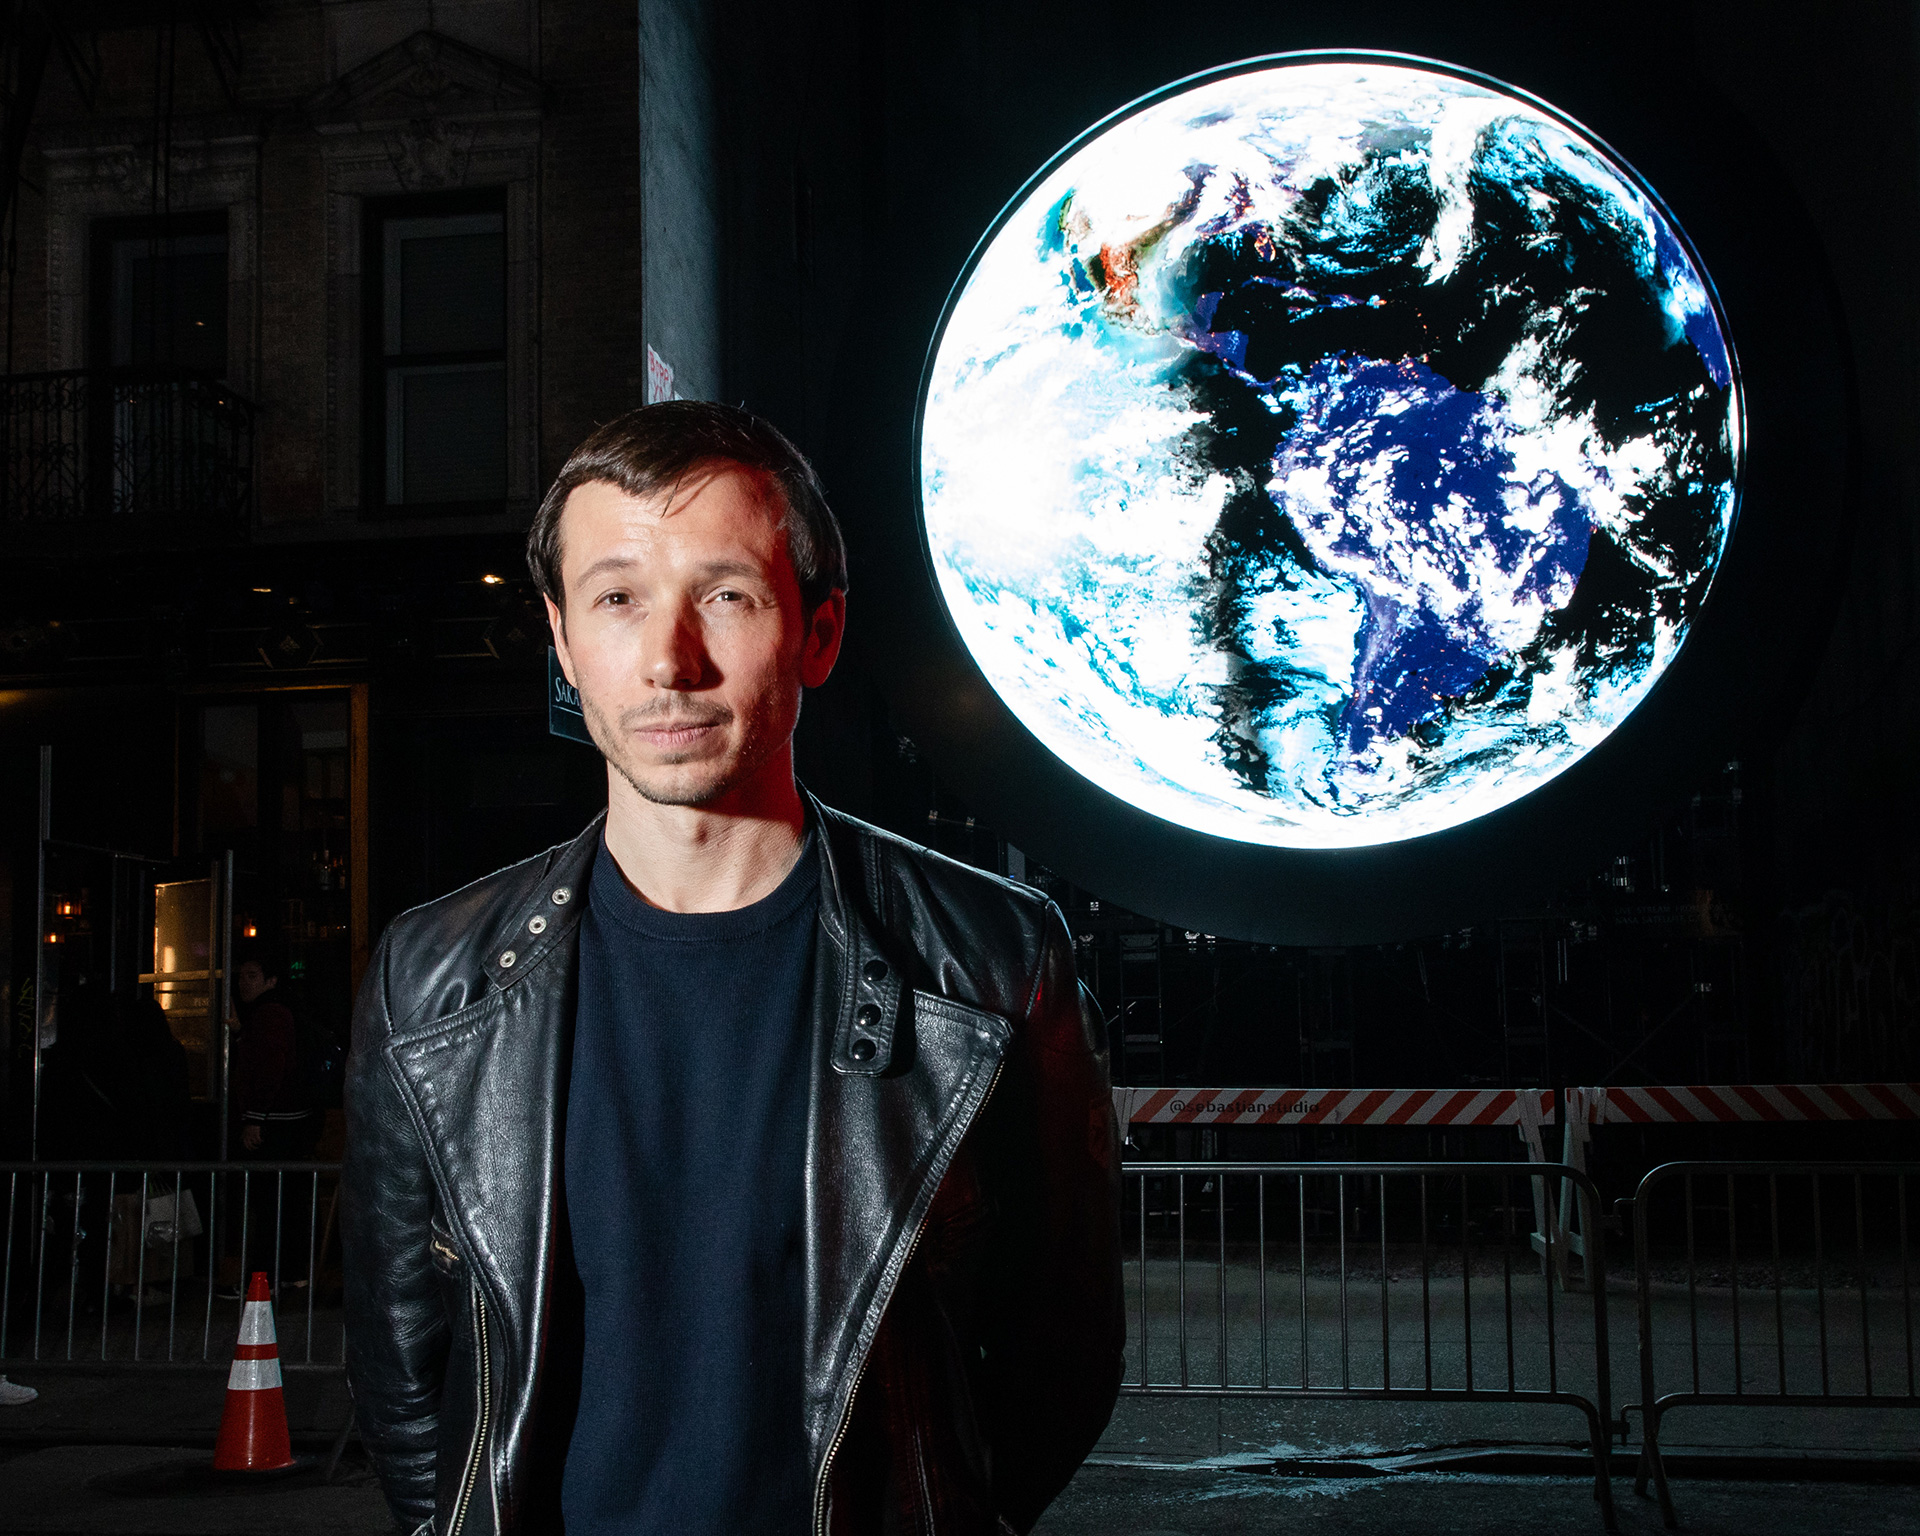 Artist Sebastian Errazuriz in front of the 'blue marble' installation at 159 Ludlow Street | blue marble | Sebastian Errazuriz | STIR